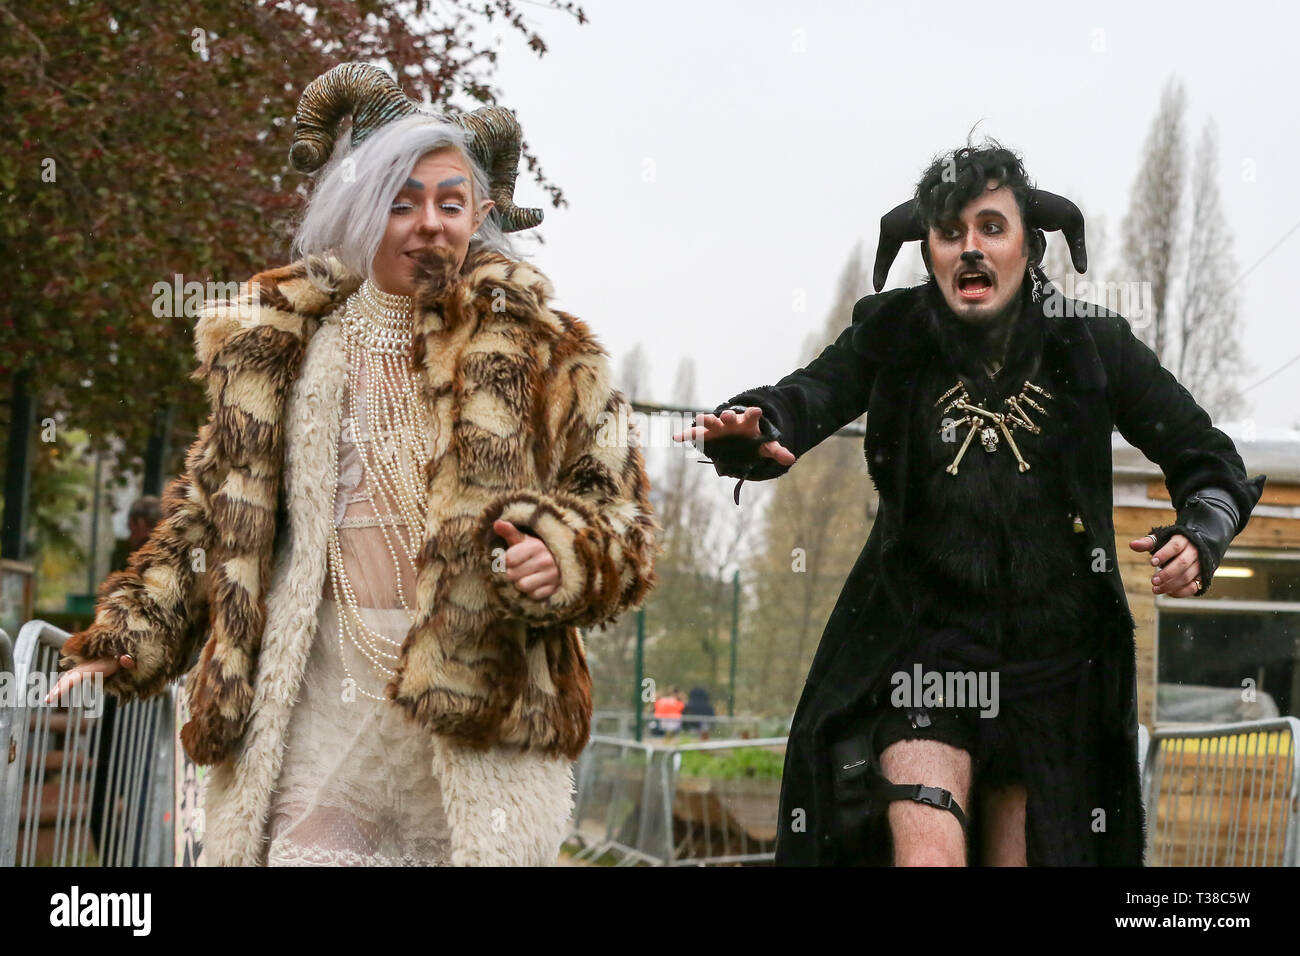 London, UK, UK. 7th Apr, 2019. People dressed in goats outfits are seen running before the Oxford vs Cambridge Goat Race in East London.Two pygmy goats compete during the 10th Oxford and Cambridge Goat Race at Spitalfields City Farm, Bethnal Green in East London. The annual fundraising event, which takes place at the same time as the Oxford and Cambridge boat race, where two goats, one named Hamish representing Oxford and the other Hugo representing Cambridge to be crowned King Billy. Credit: Dinendra Haria/SOPA Images/ZUMA Wire/Alamy Live News - Stock Image